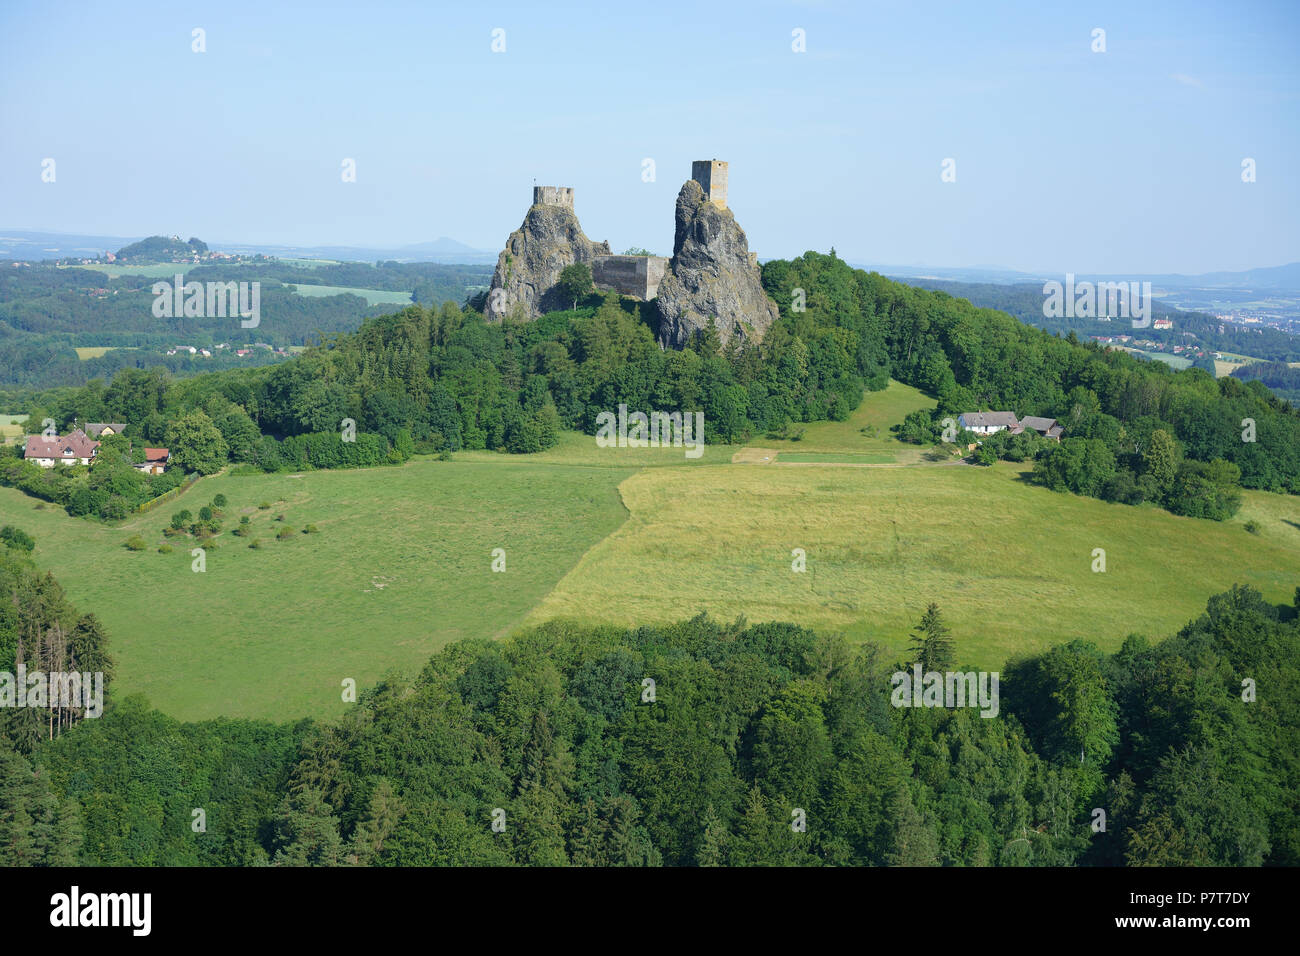 MEDIEVAL CASTLE PERCHED HIGH ON A NARROW BASALTIC TWIN PEAK (aerial view). Trosky Castle, Troskovice, Bohemia, Czech Republic. - Stock Image